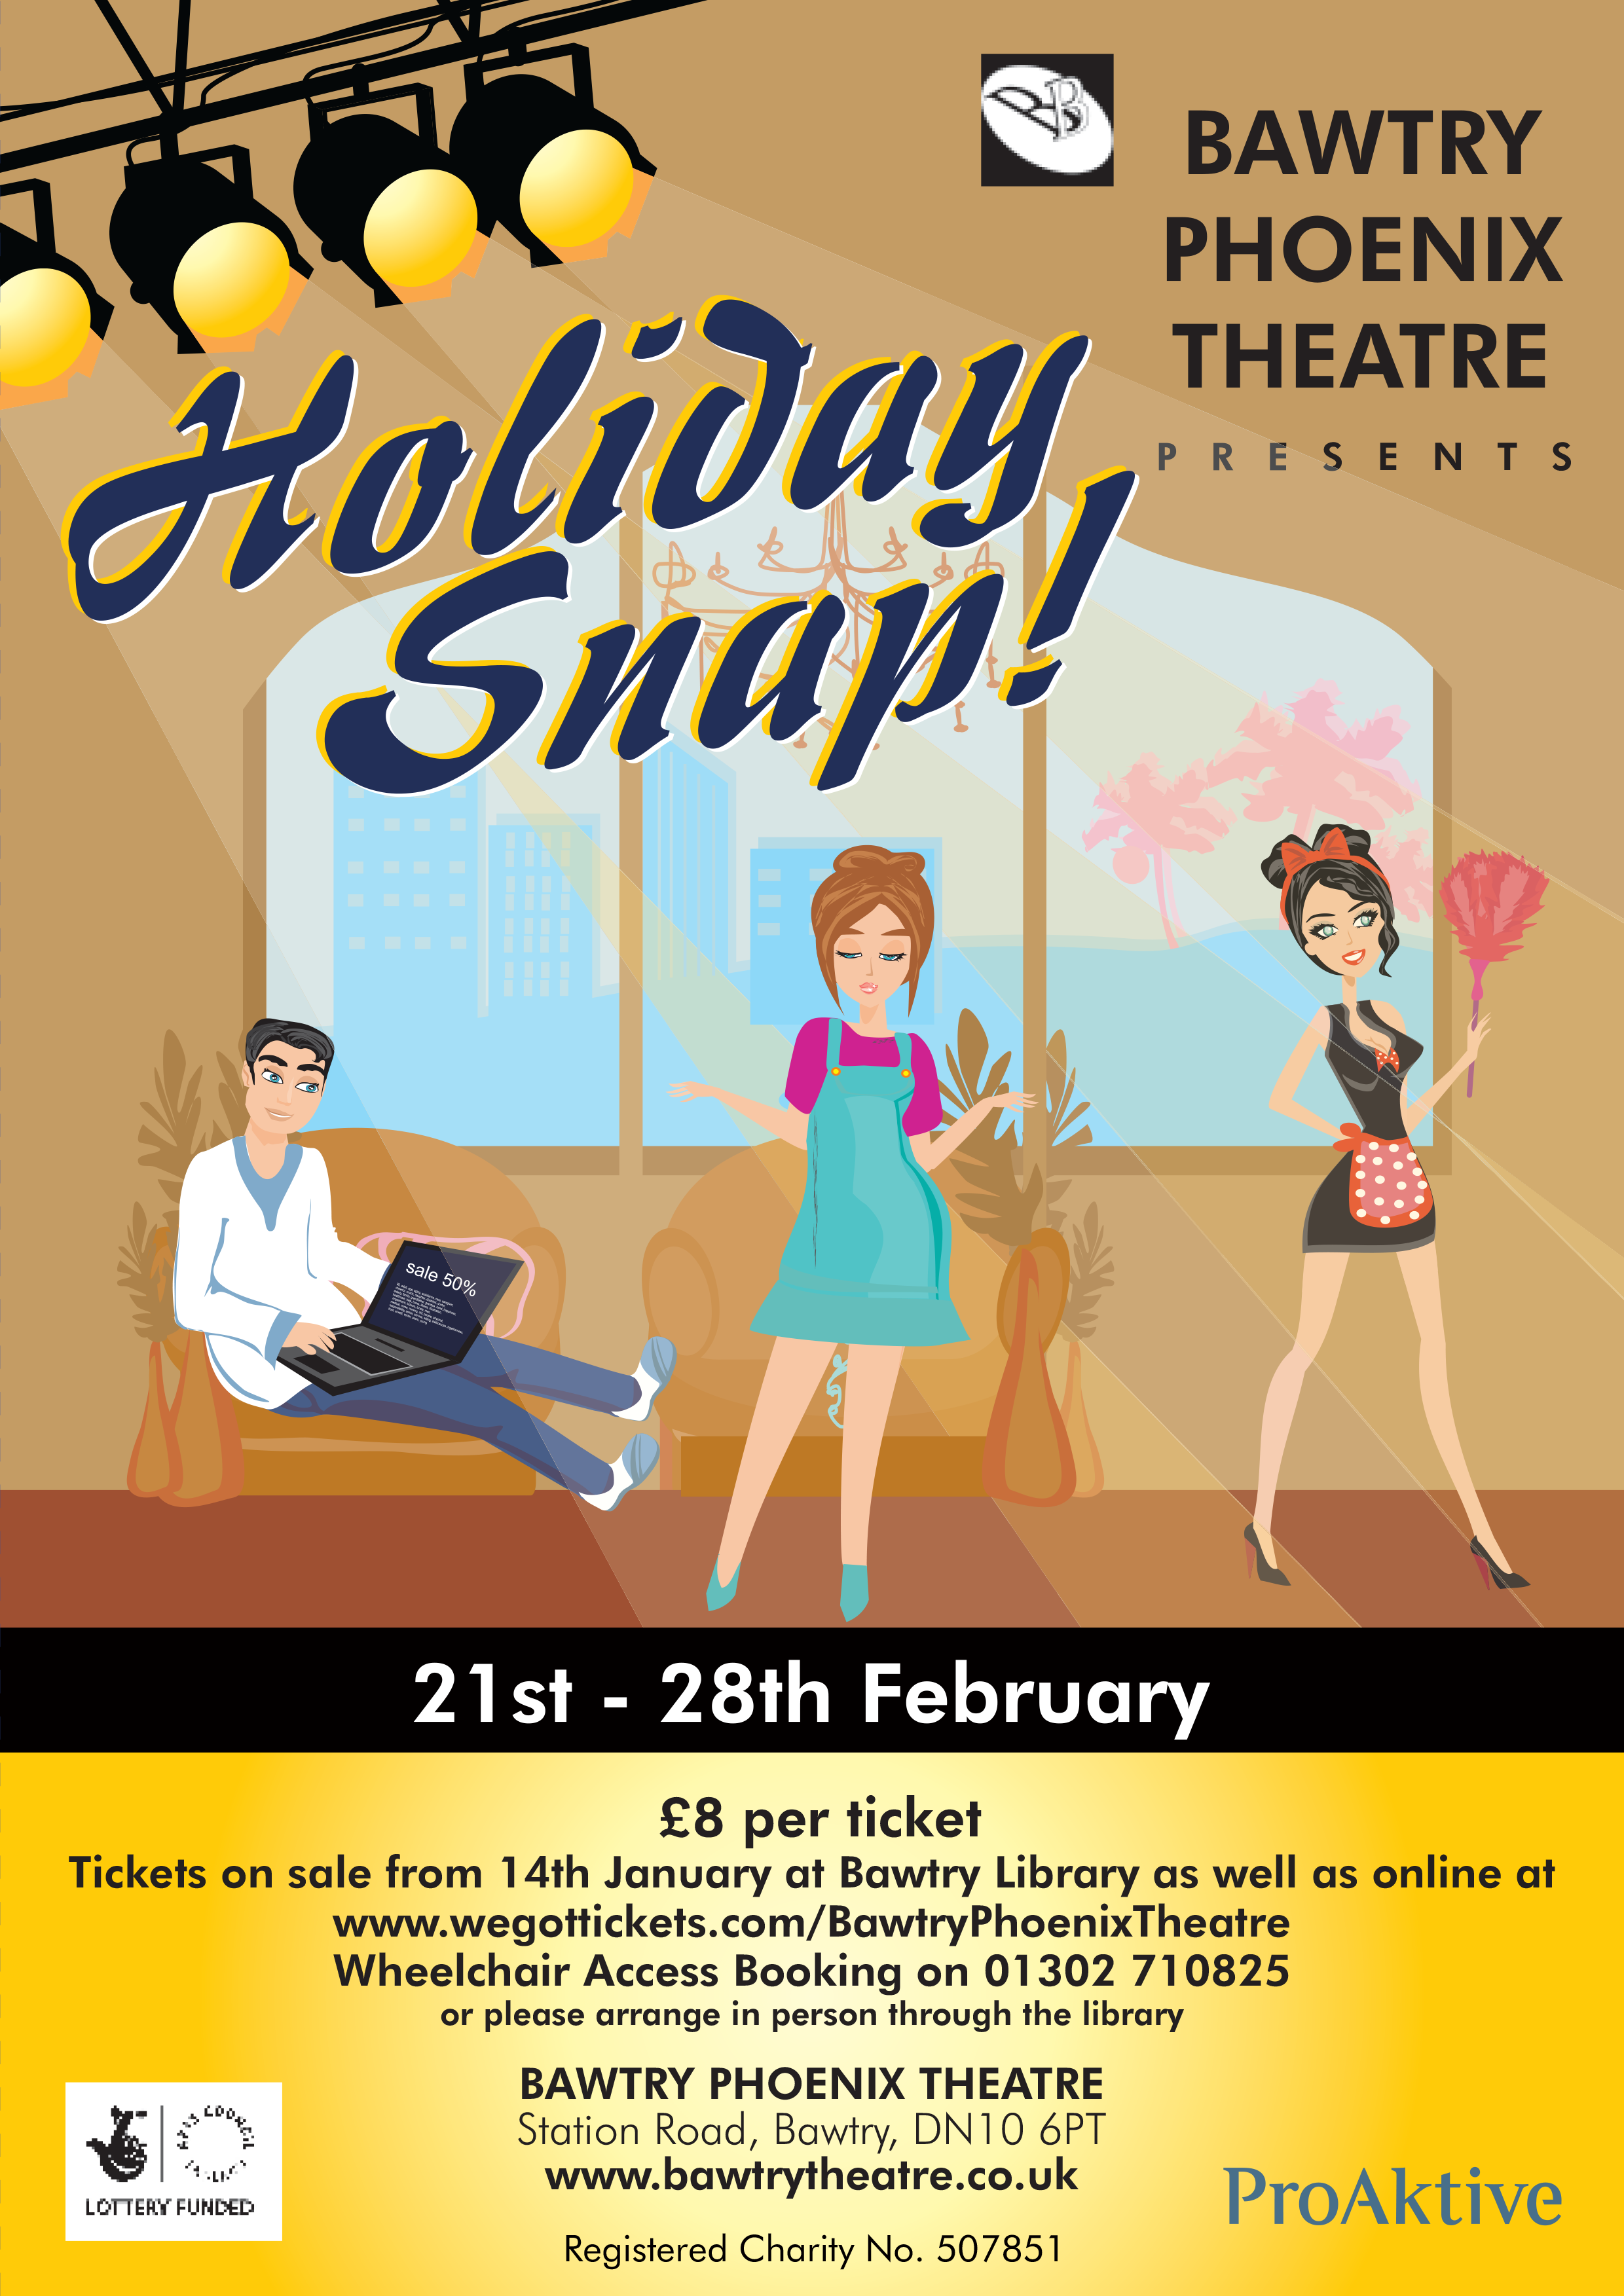 Watch Bawtry Phoenix Theatre's 'The Sketch Show' | Visit Bawtry